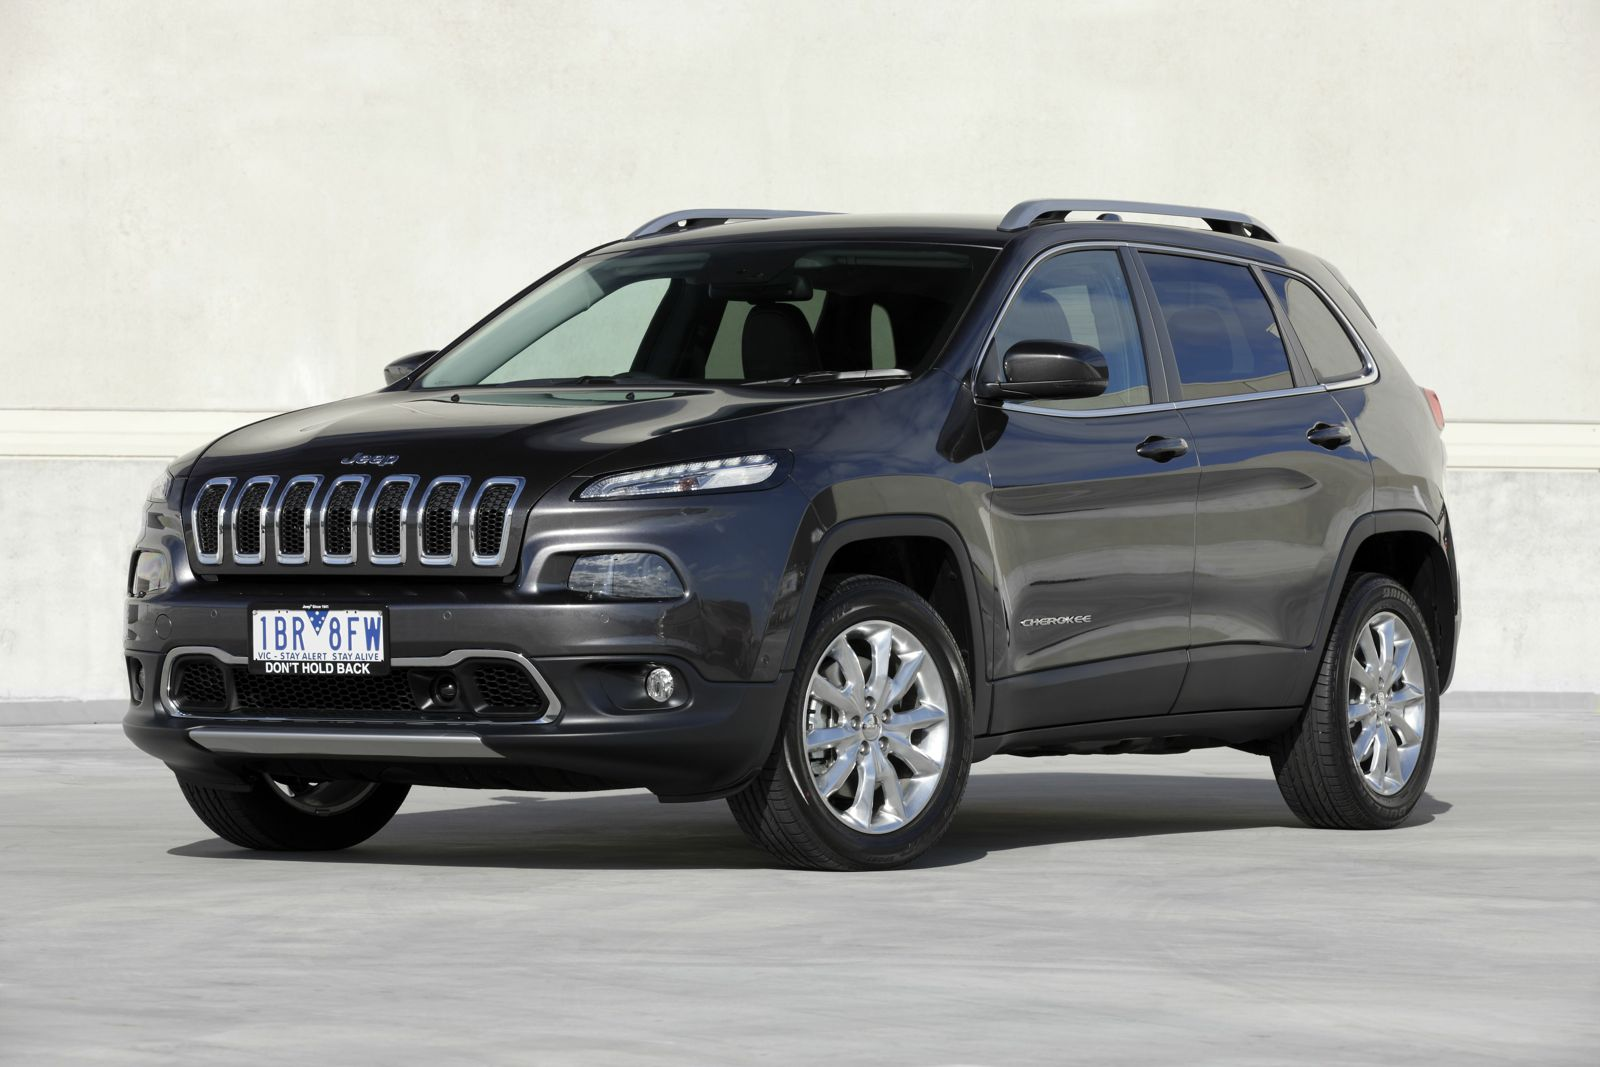 2014 Jeep Cherokee Pricing And Specifications Photos